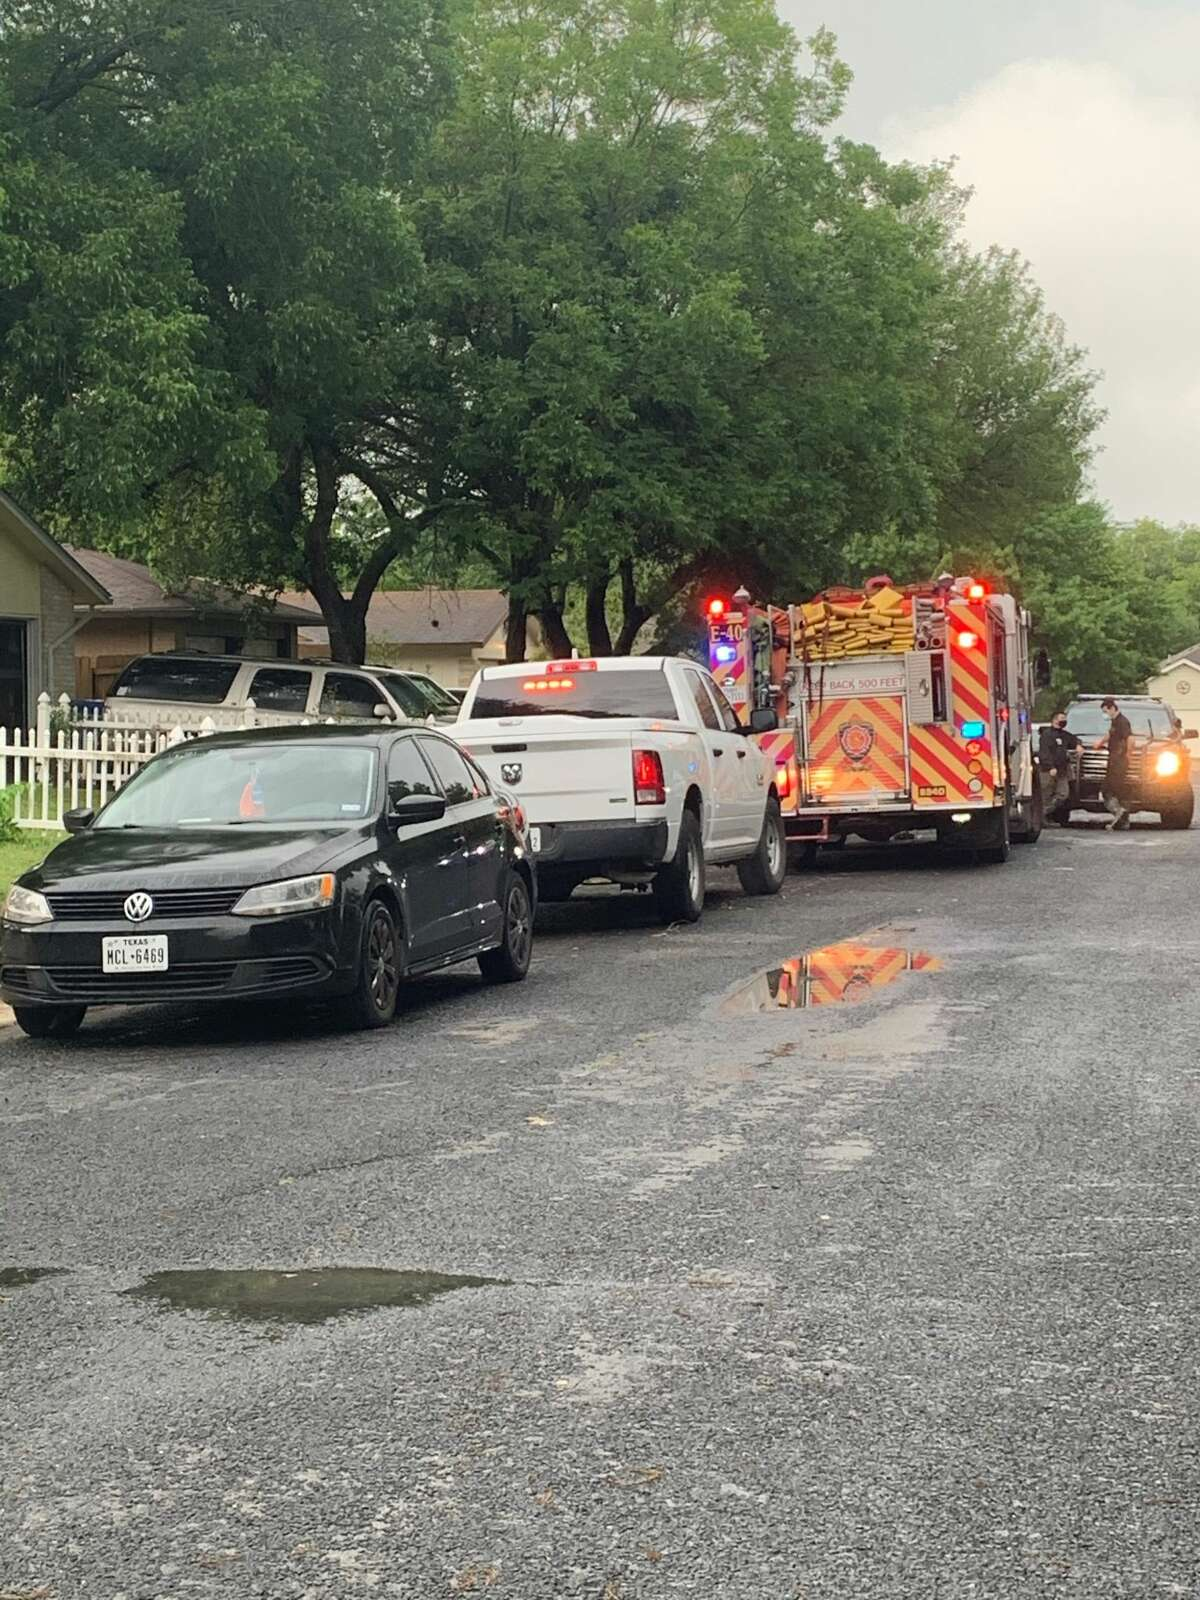 San Antonio firefighters say one man is dead following a house fire on the Northeast Side Monday morning, May 25, 2020.